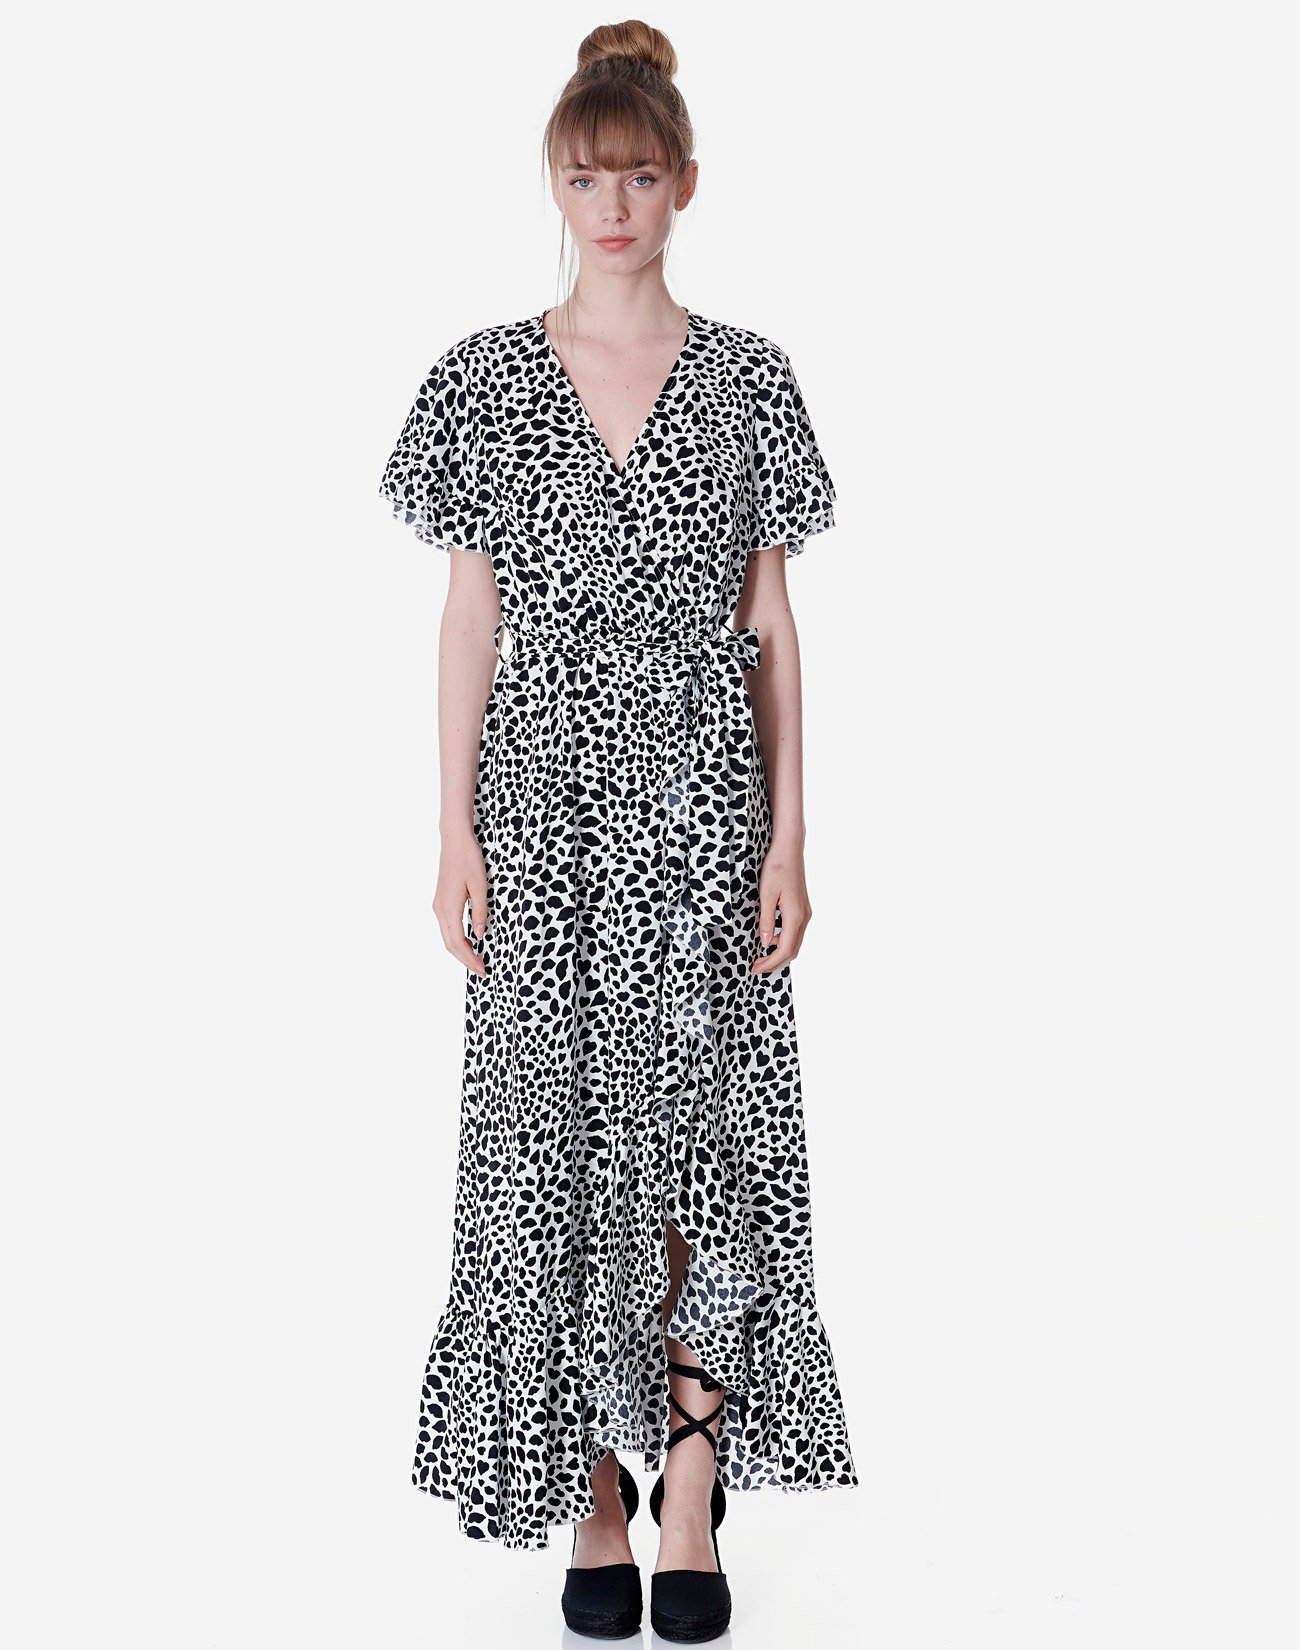 Printed dress with ruffles